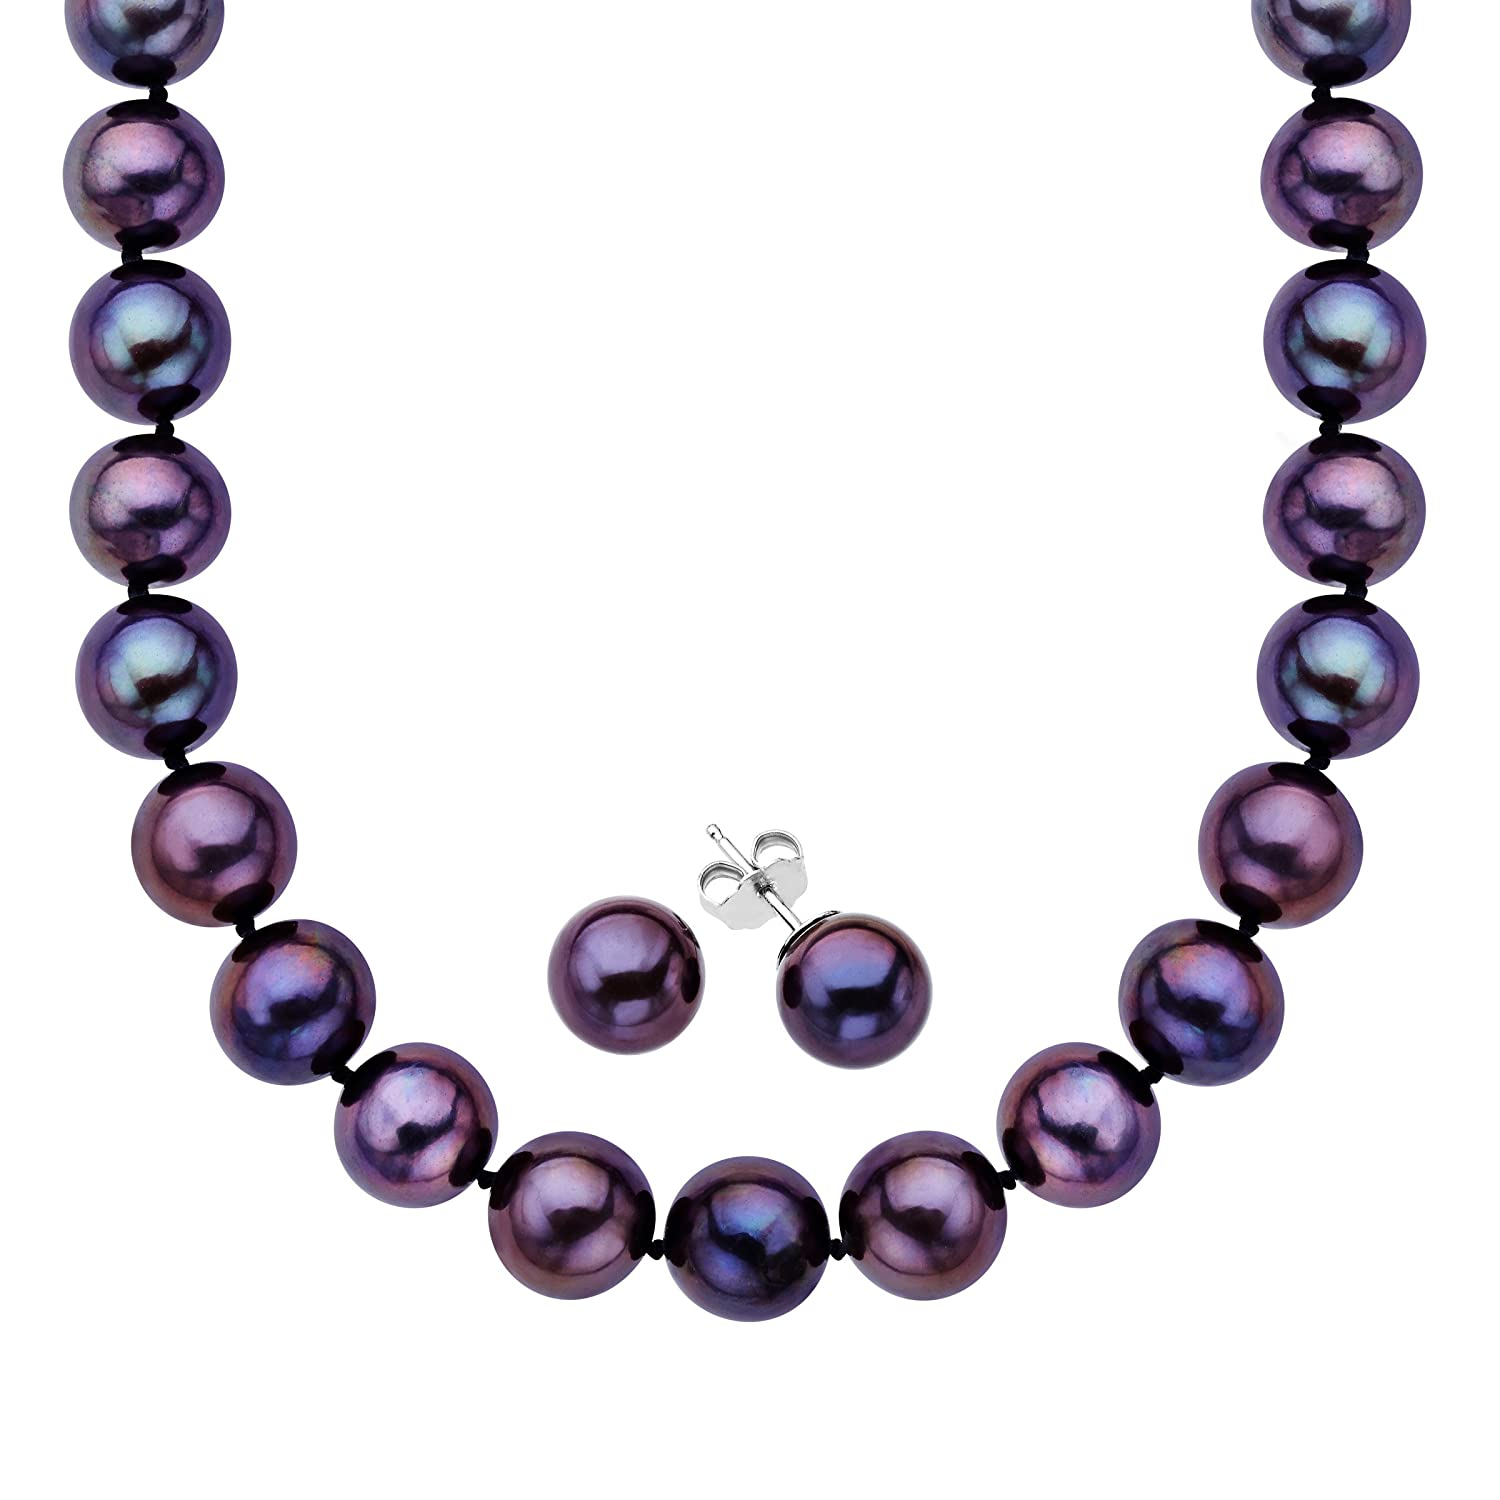 Black Freshwater Pearl Necklace and Earring Set in Sterling Silver (8.5-10.5mm)